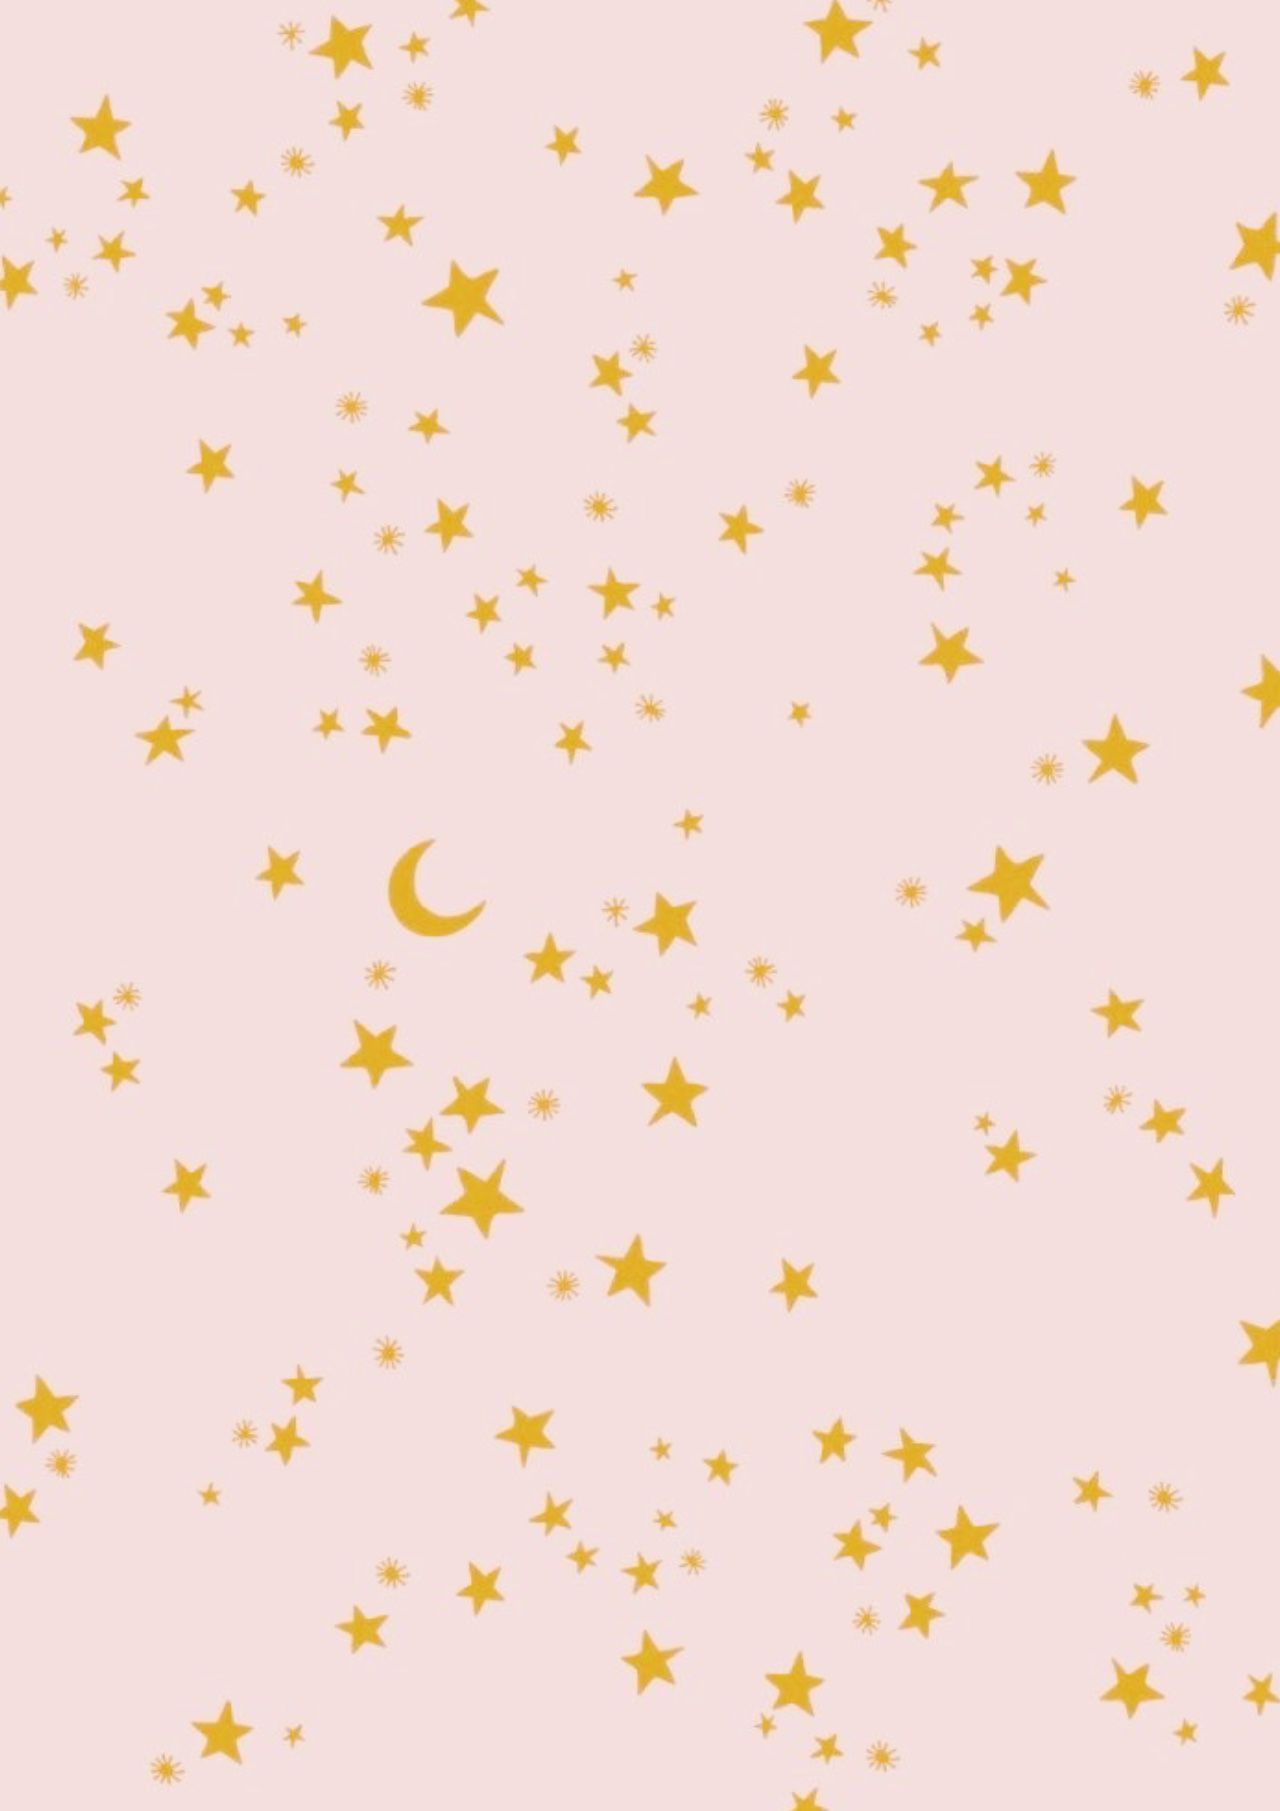 Pin By Mimi Hage On Wallpaper Wallpaper Iphone Cute Pattern Wallpaper Iphone Background